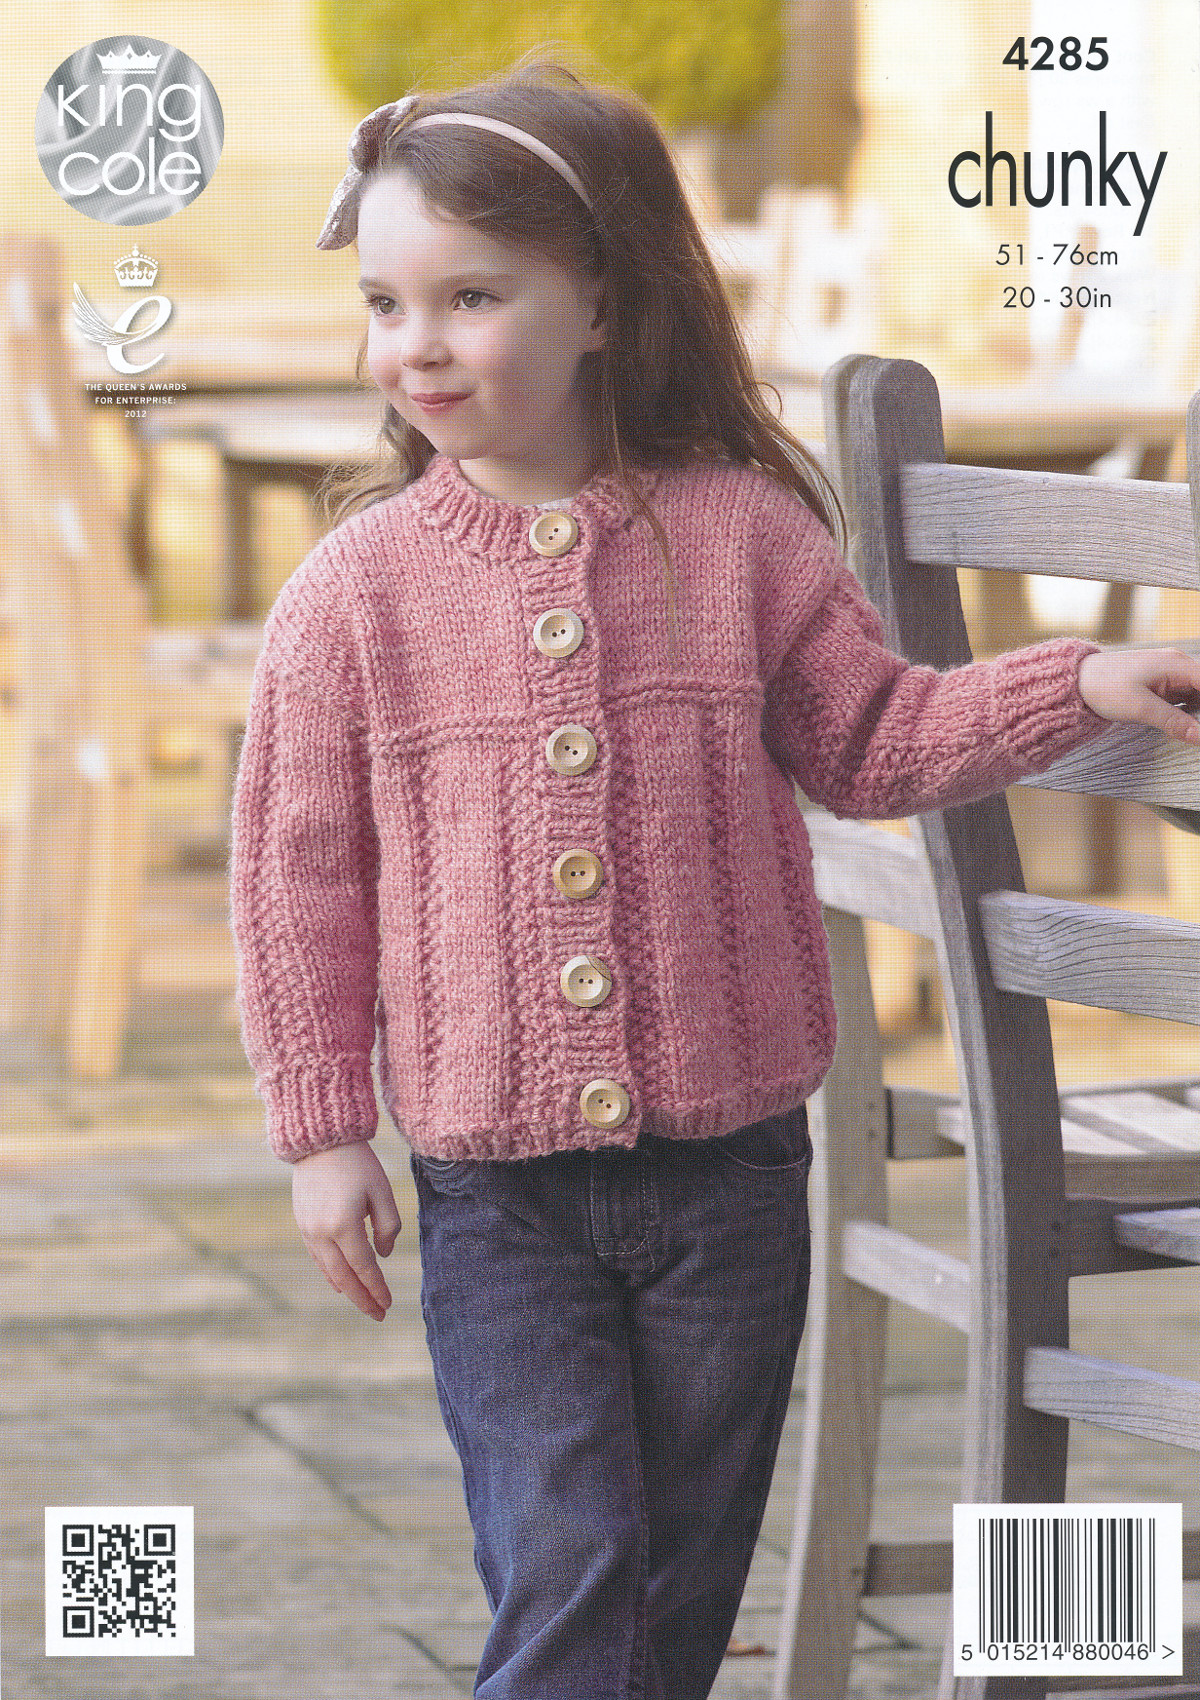 Children s Cardigan Knitting Patterns : Kids Chunky Knitting Pattern King Cole Childrens Sweater Jumper Cardigan 4285...